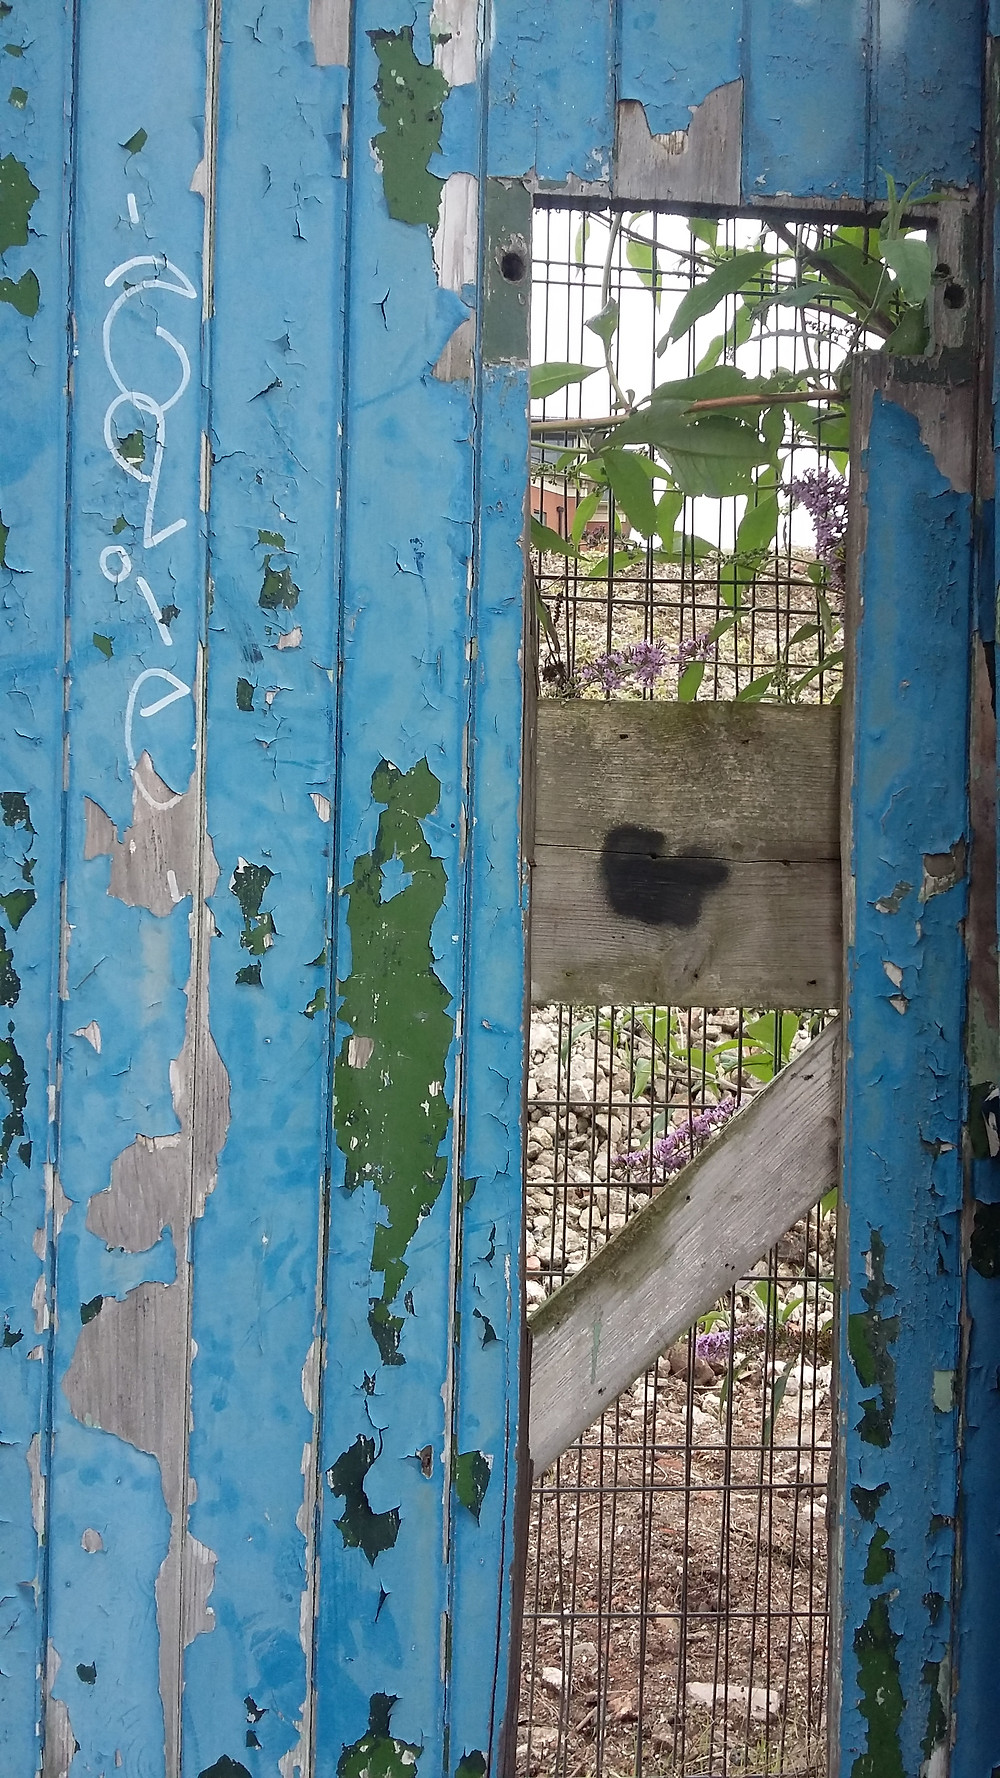 Cracked blue painted door with panel missing, looking onto building site with buddleia